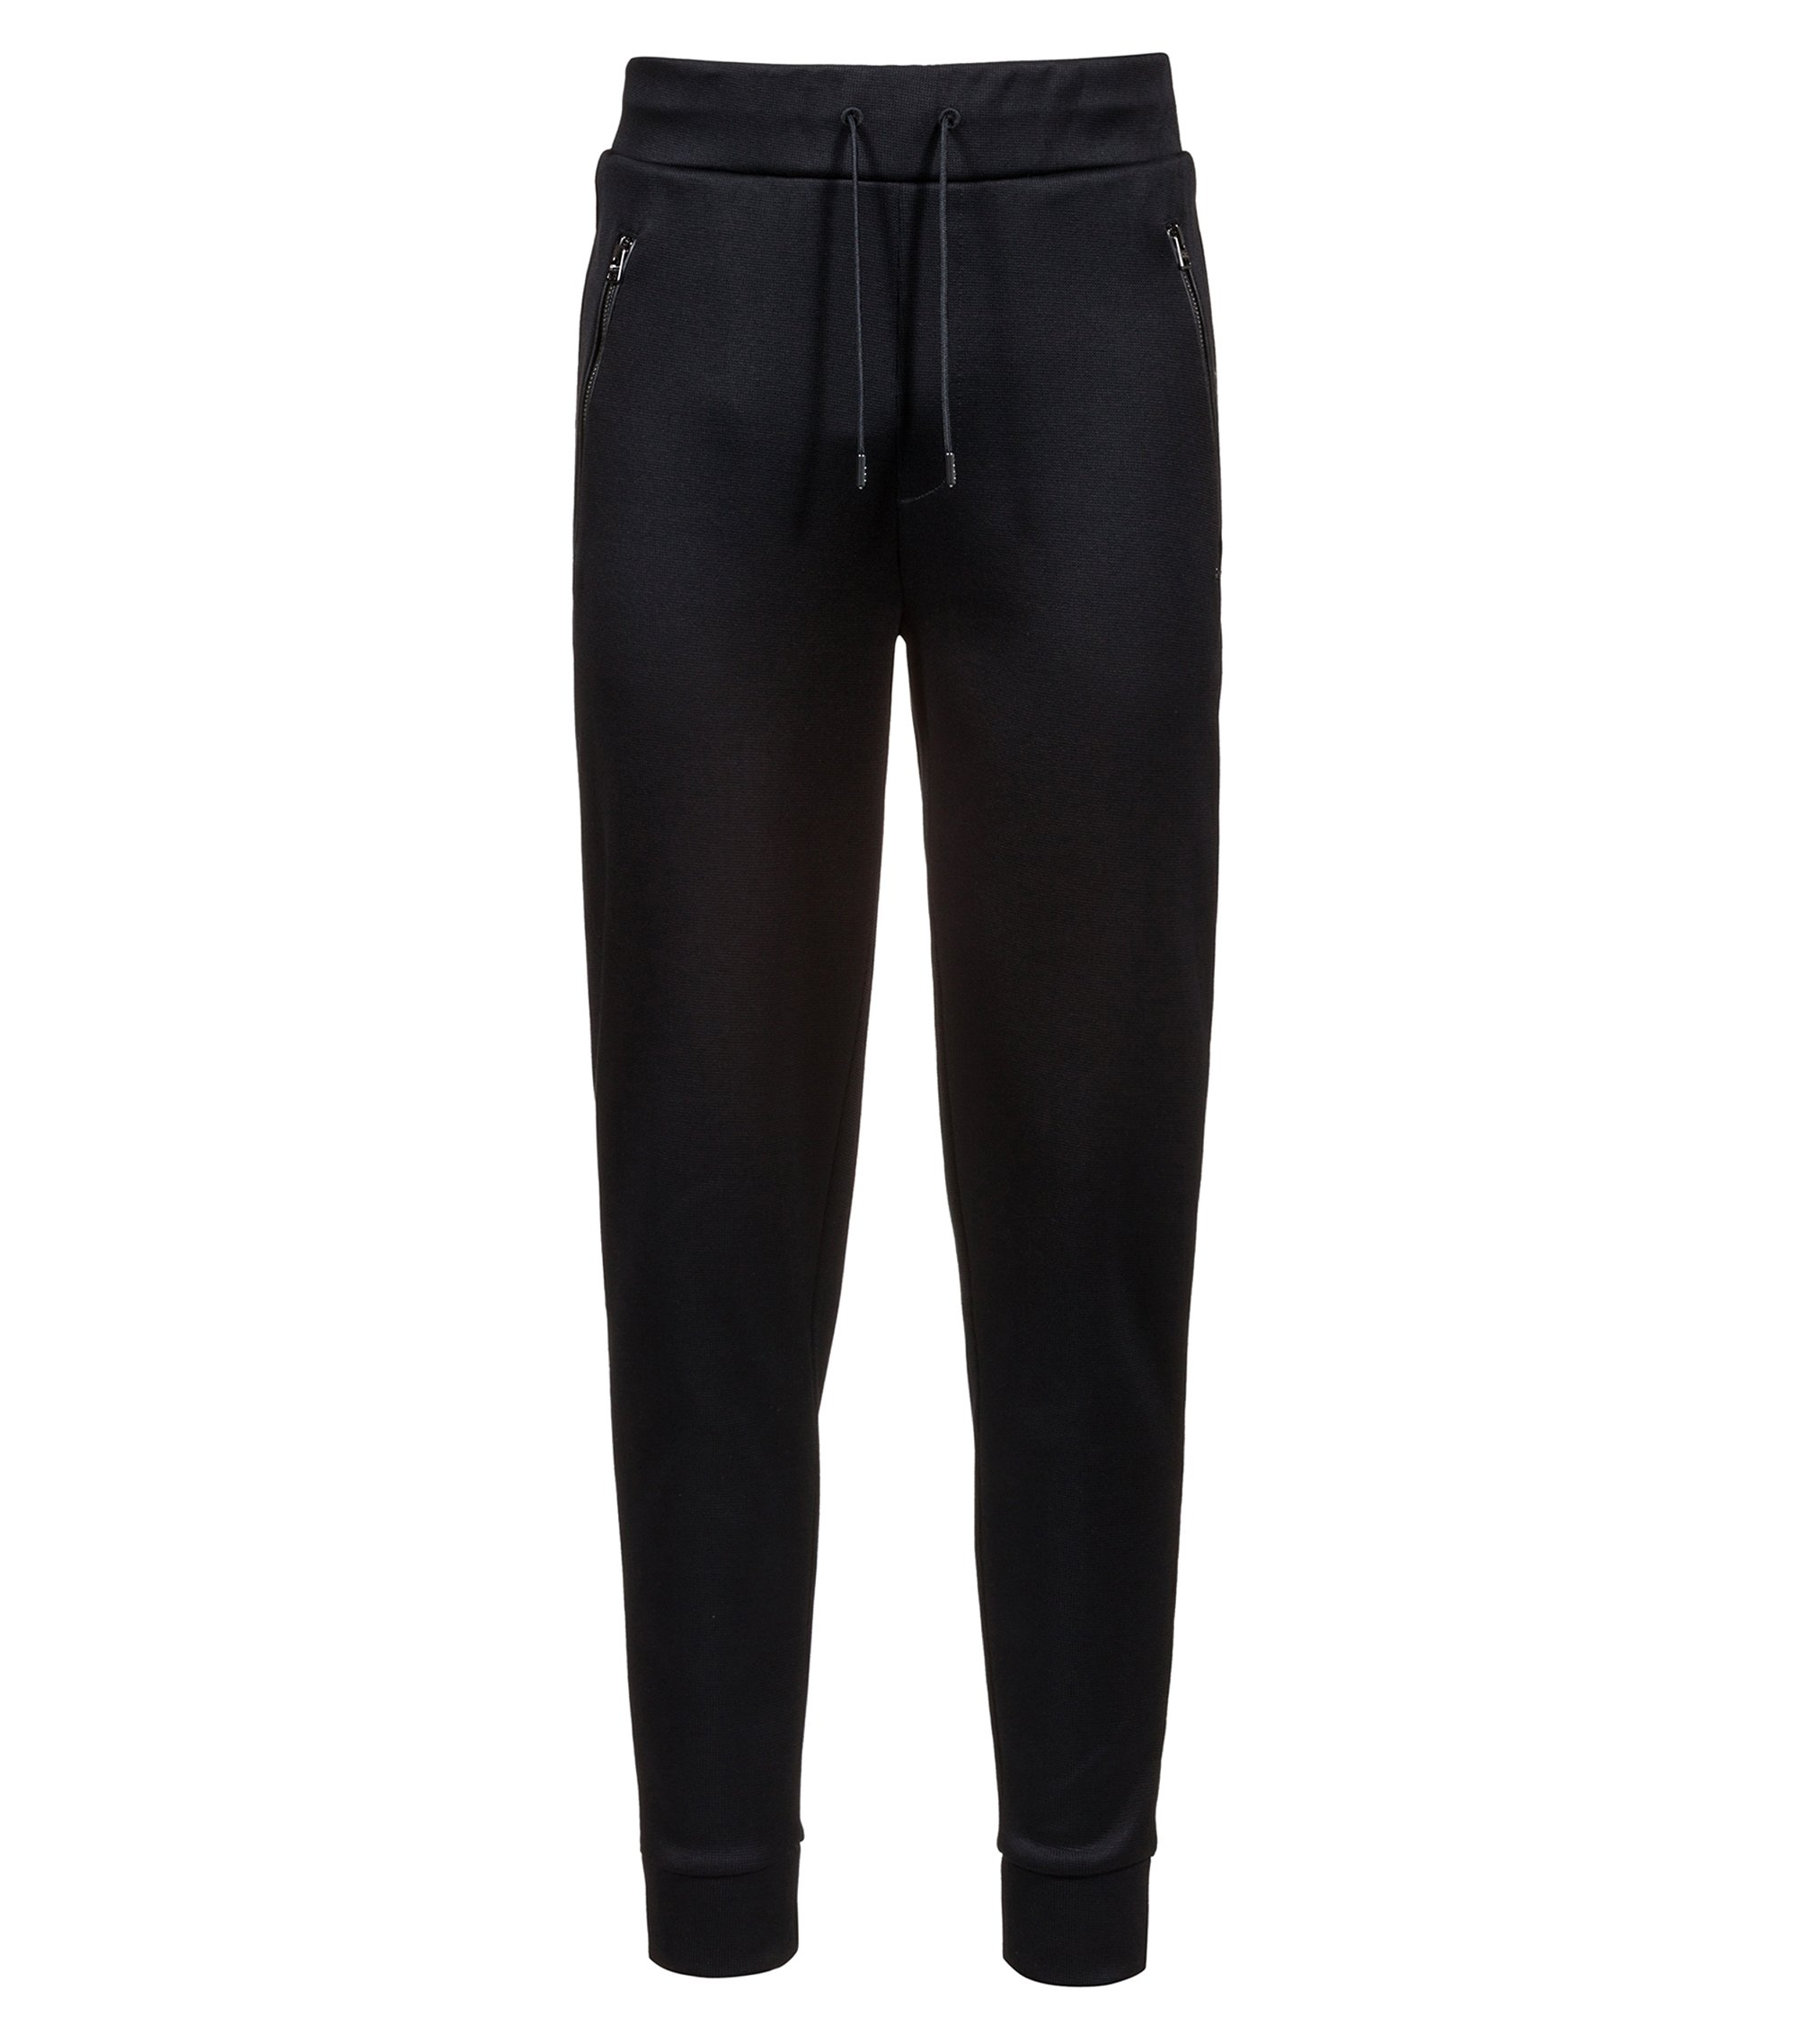 Jersey trousers in French rib with drawstring waist, Black